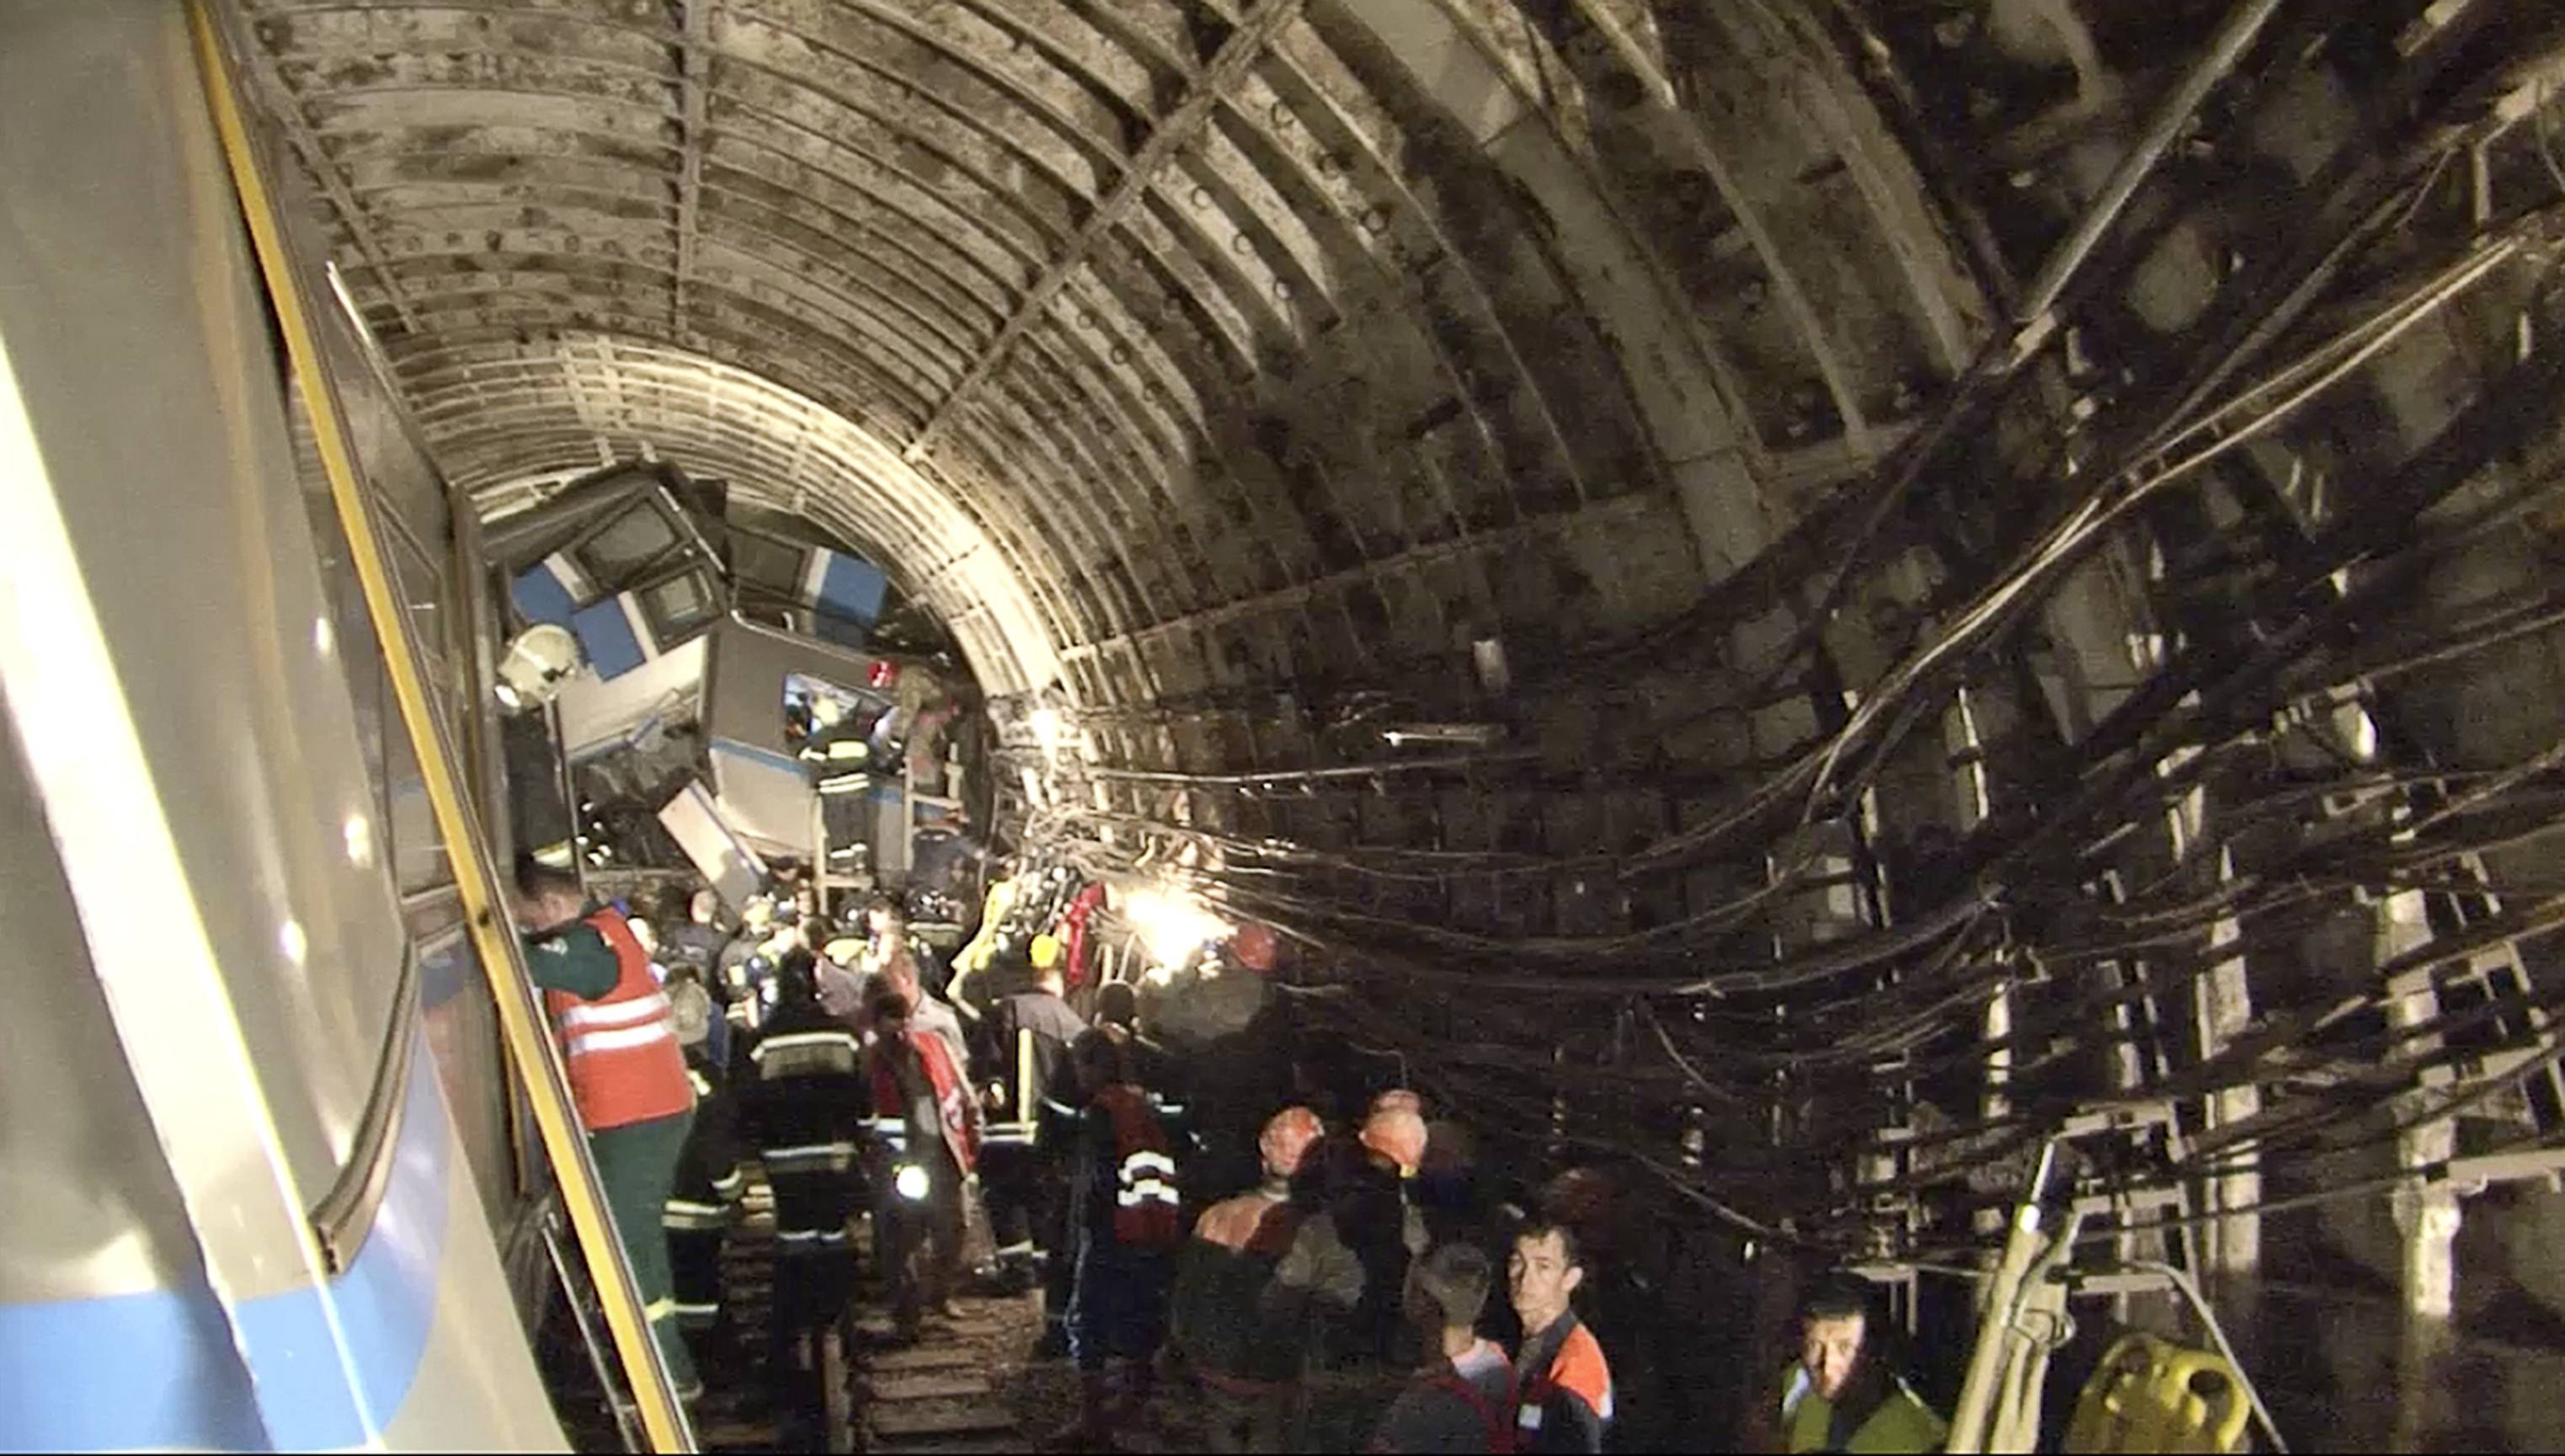 Rescue teams work inside the tunnel where several cars of a wrecked train look almost coiled, occupying the entire space of the tunnel of a Moscow subway on Tuesday.